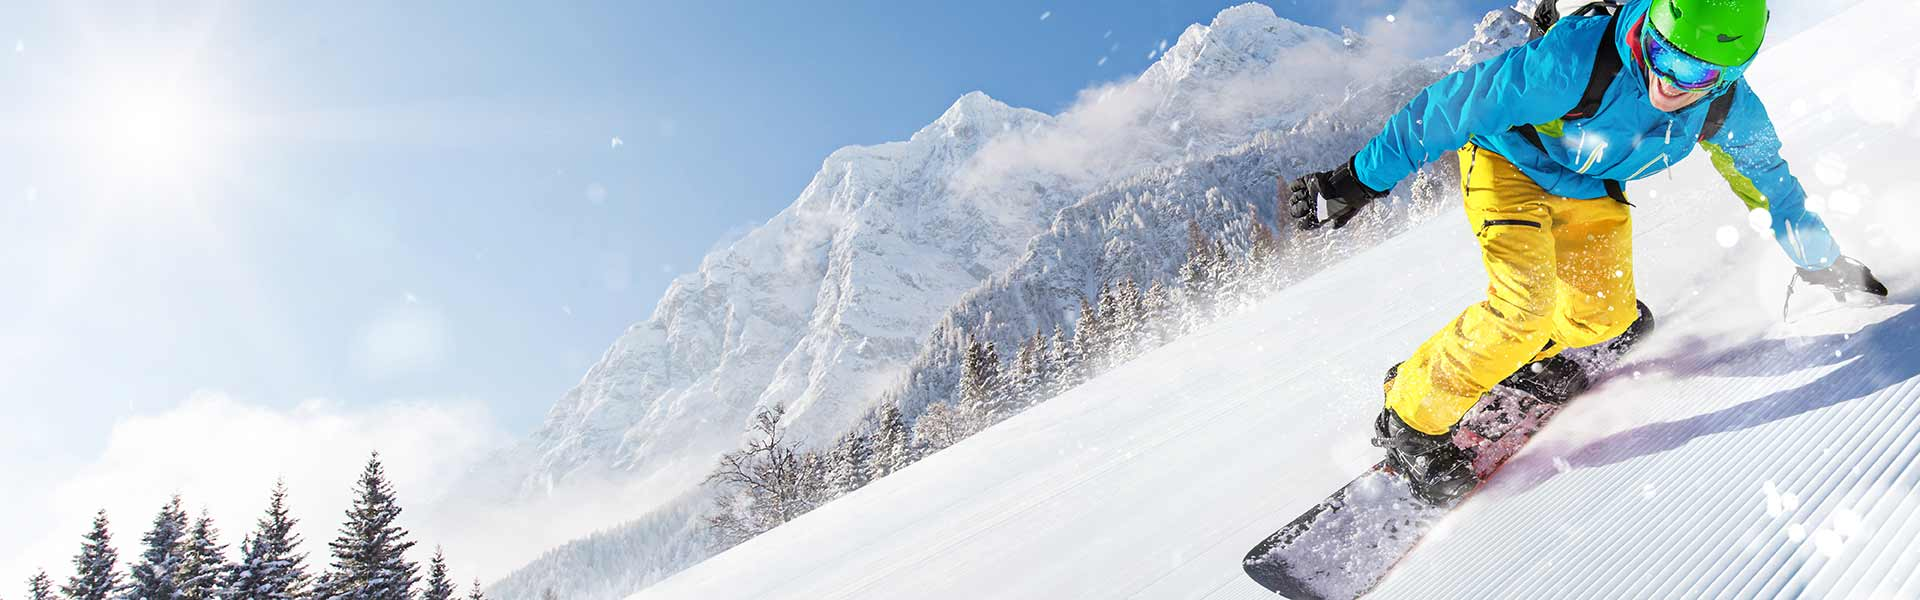 Snowboarder skiing down a ski slope